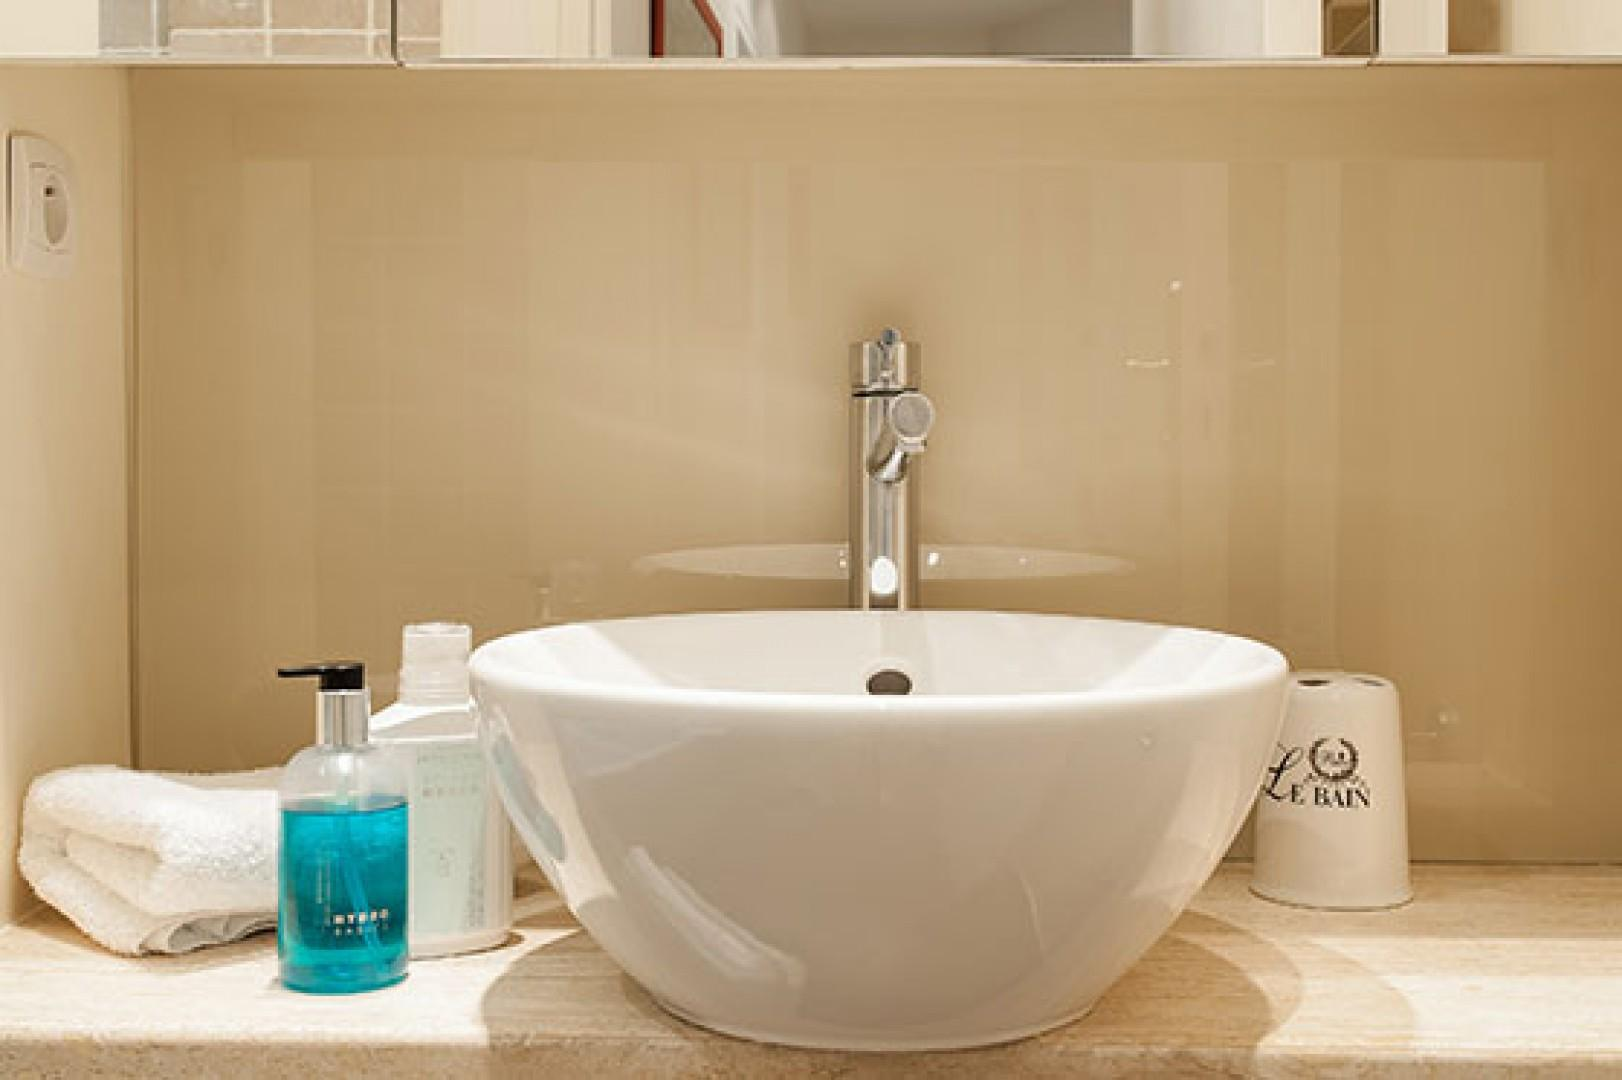 Stylish finishes are found throughout the bathroom.